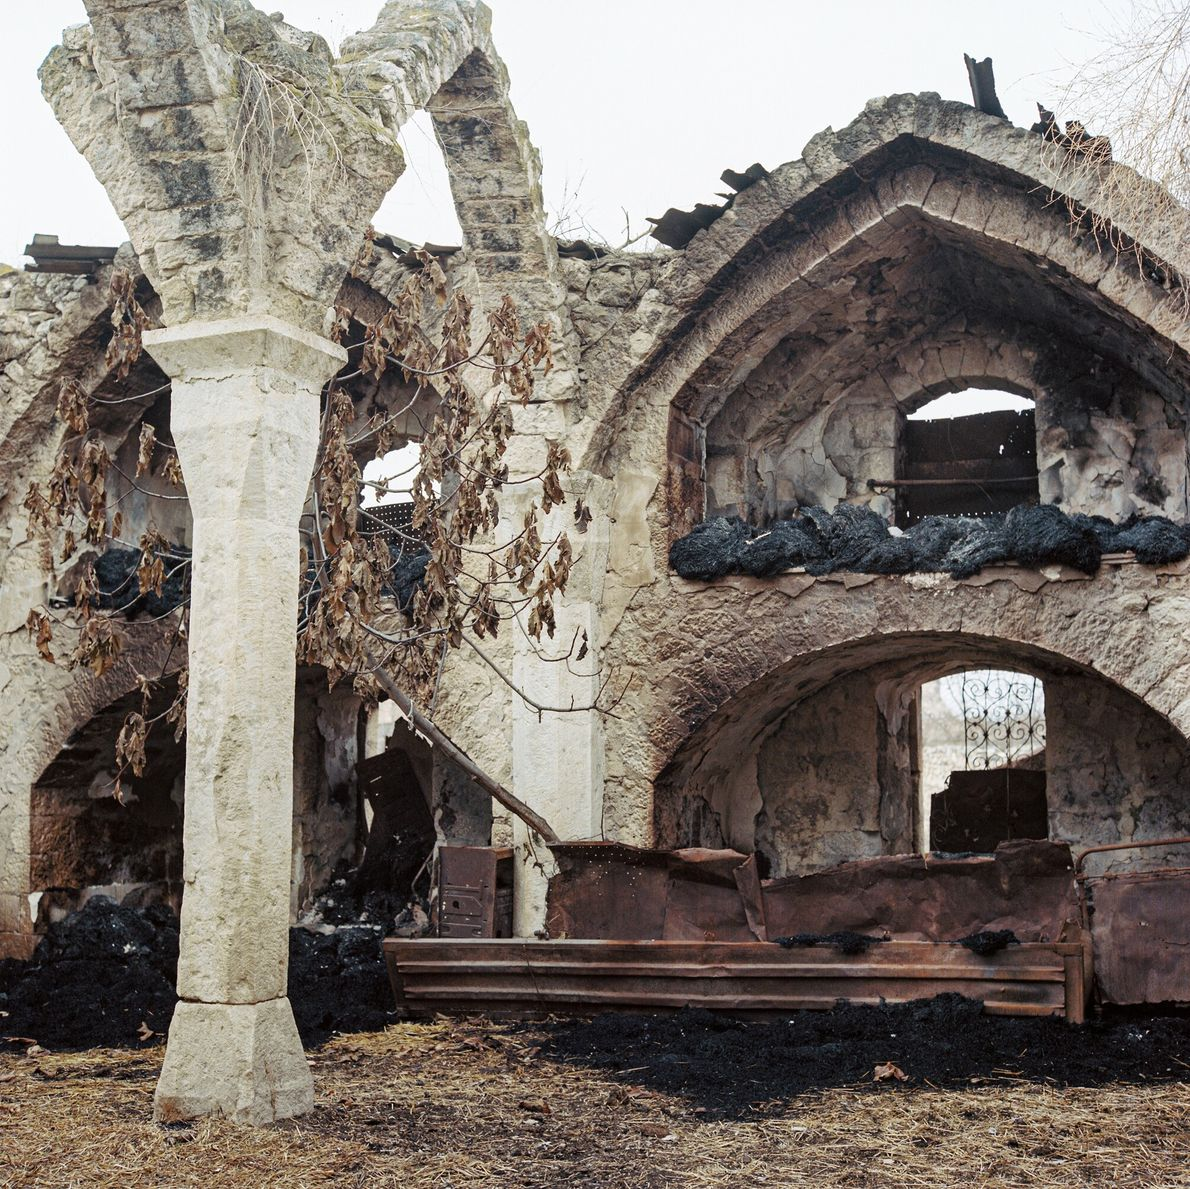 In Giyasli village in Ağdam province, the historic mosque was destroyed, its remnants used as a ...